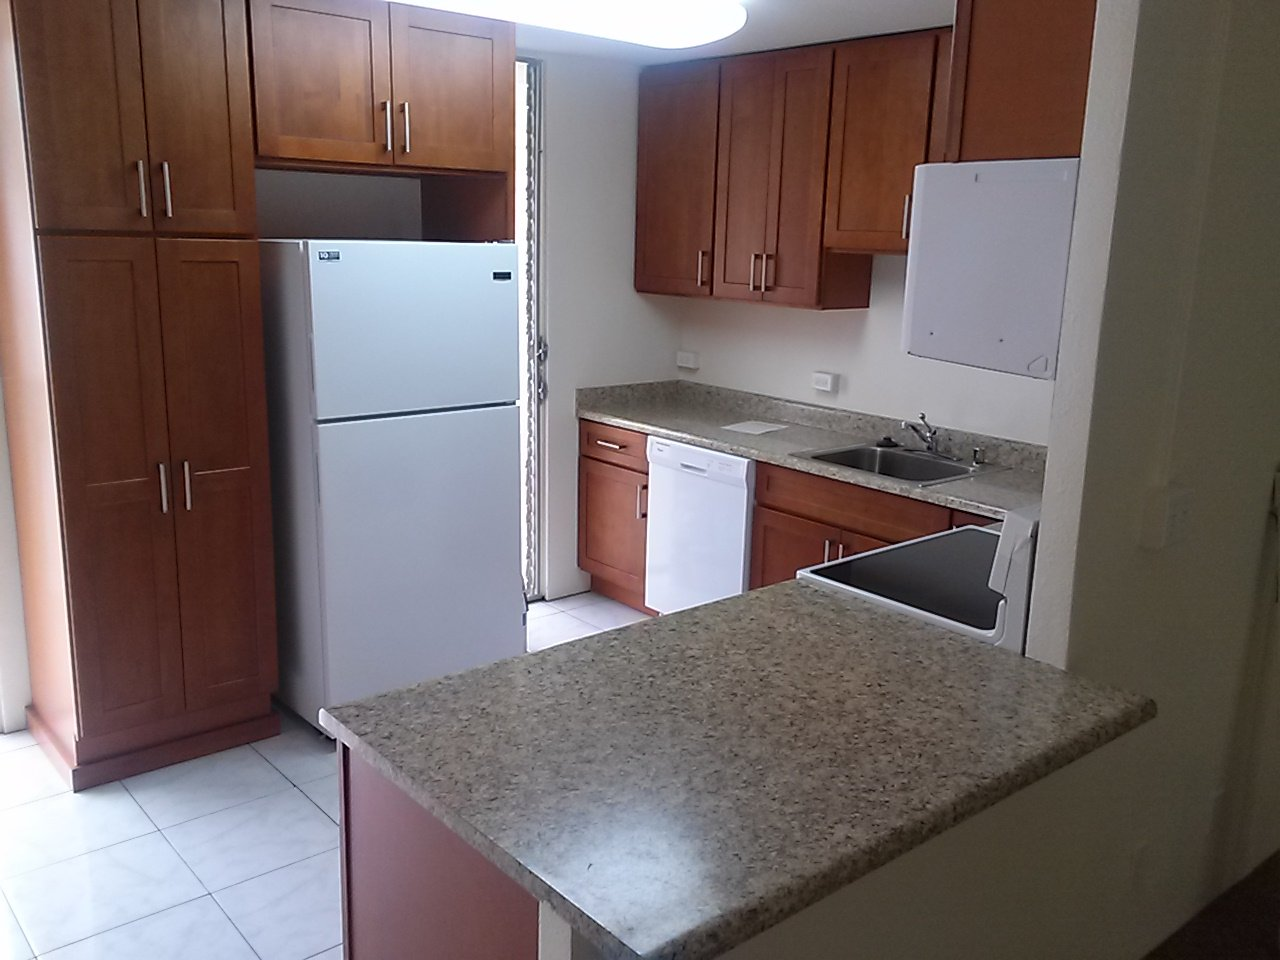 remodeled and renovated kitchen after repairs